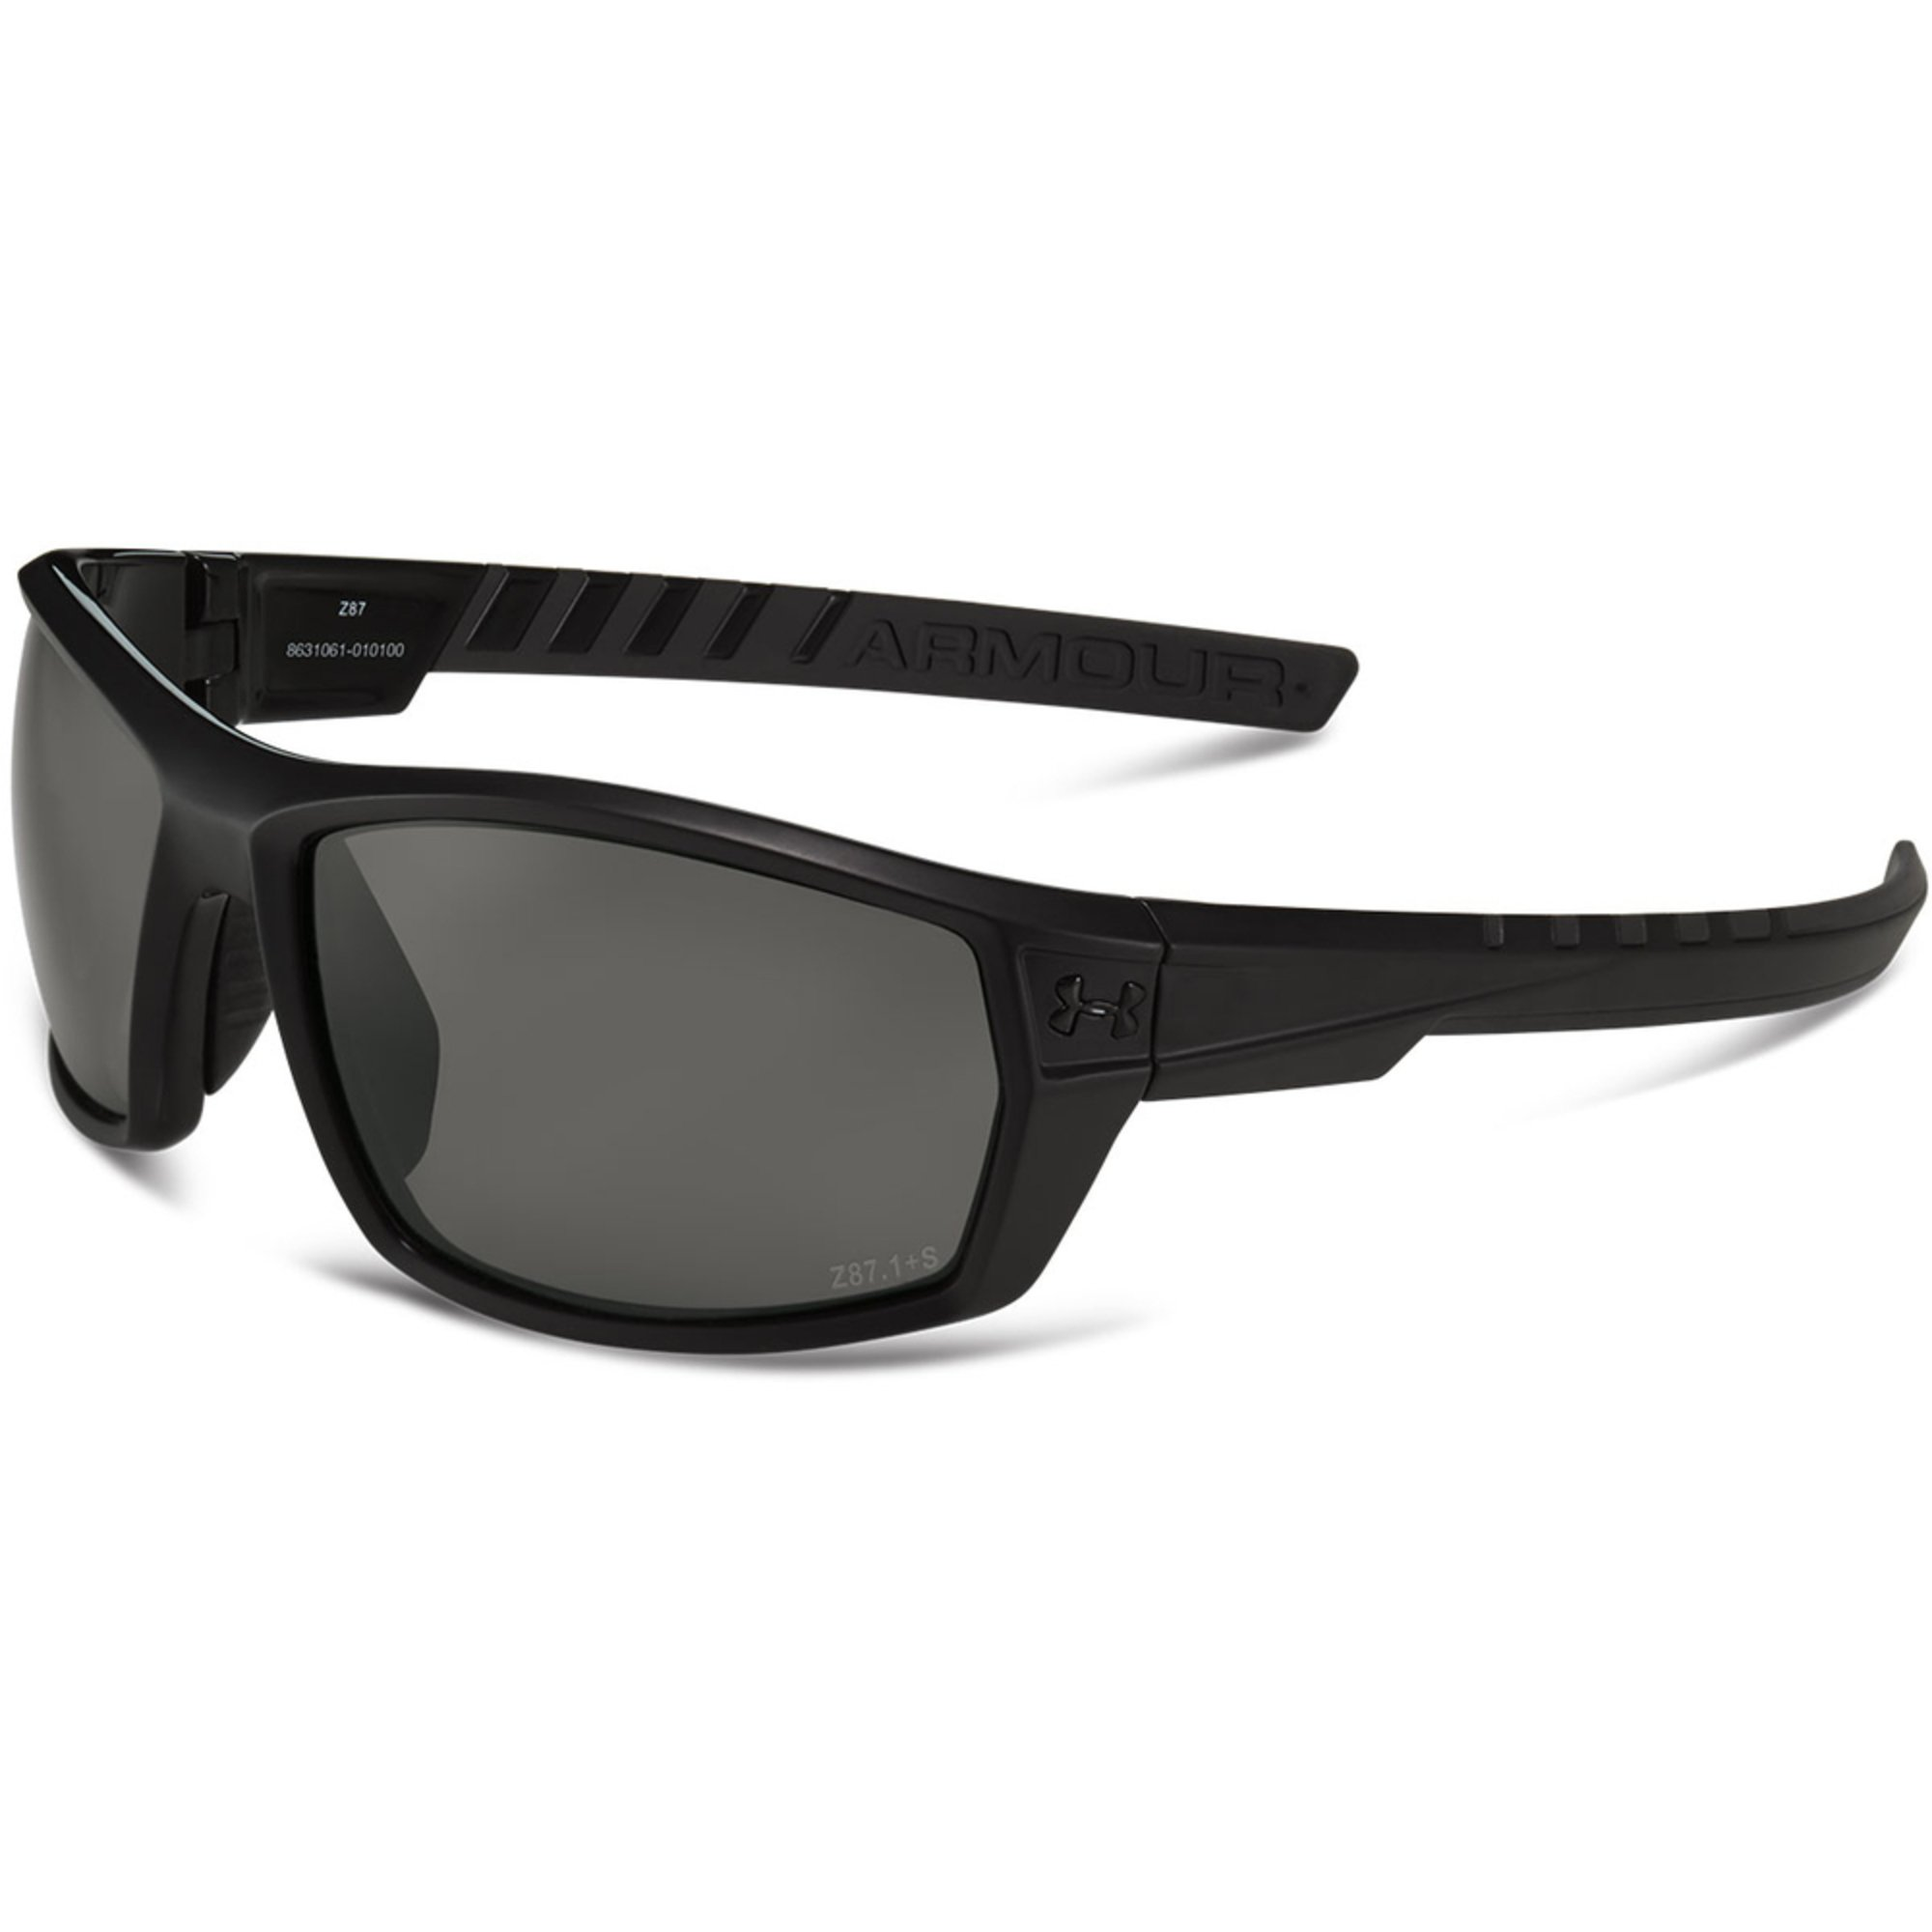 1c49bf08e74a1 Under Armour Men s Ranger Rectangle Satin Black Frame Sunglasses ...